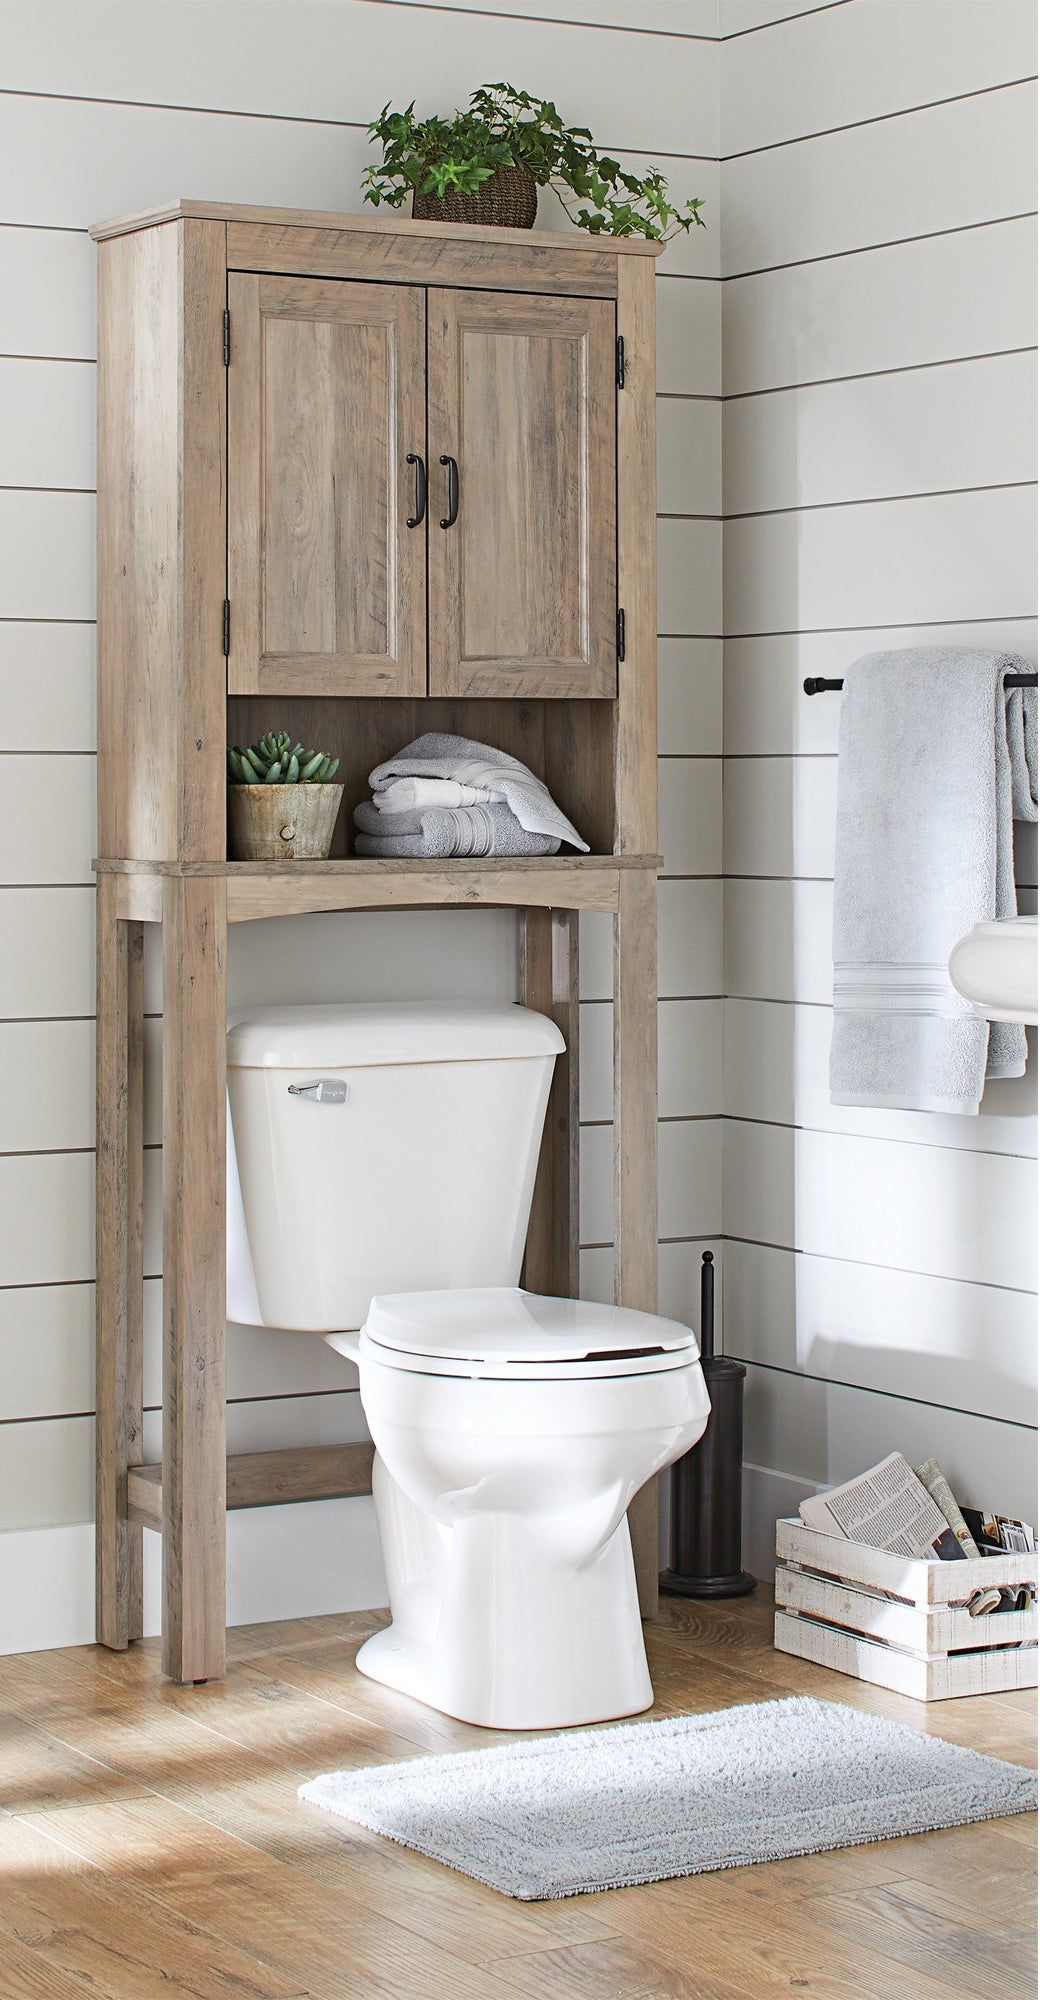 The light wooden standing bathroom shelving with cabinet doors